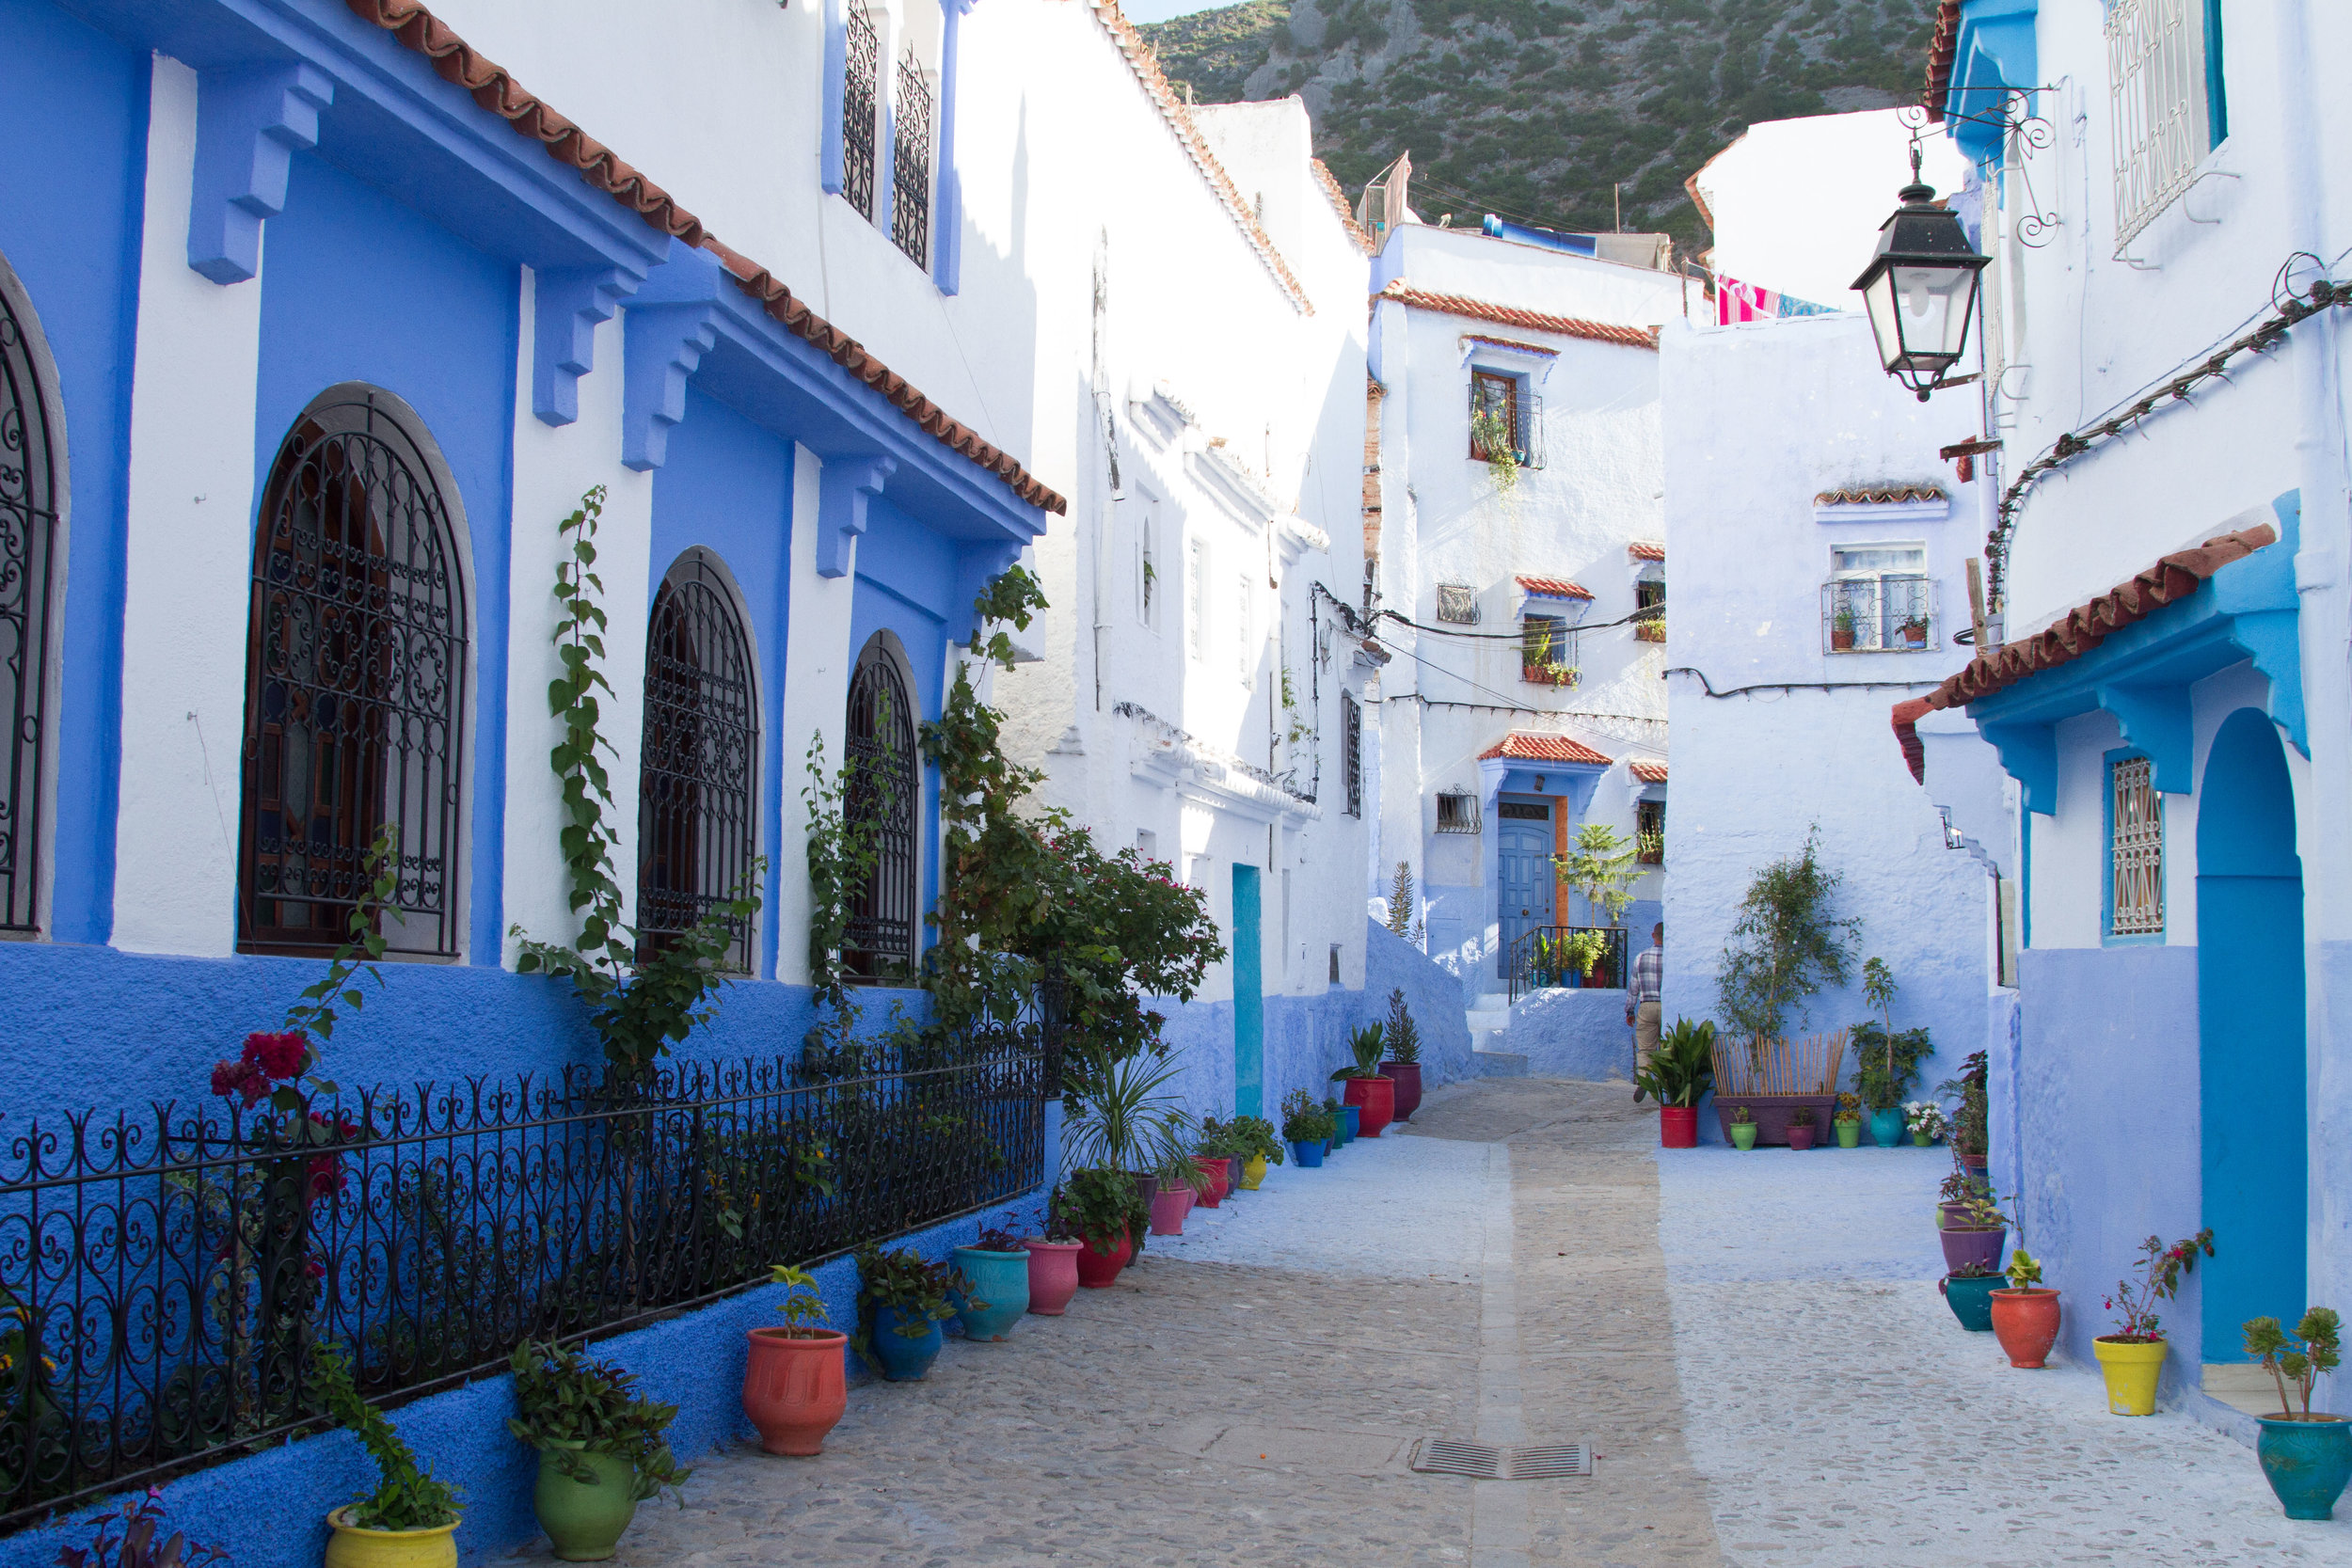 Colourful pots line the street in Chefchaouen